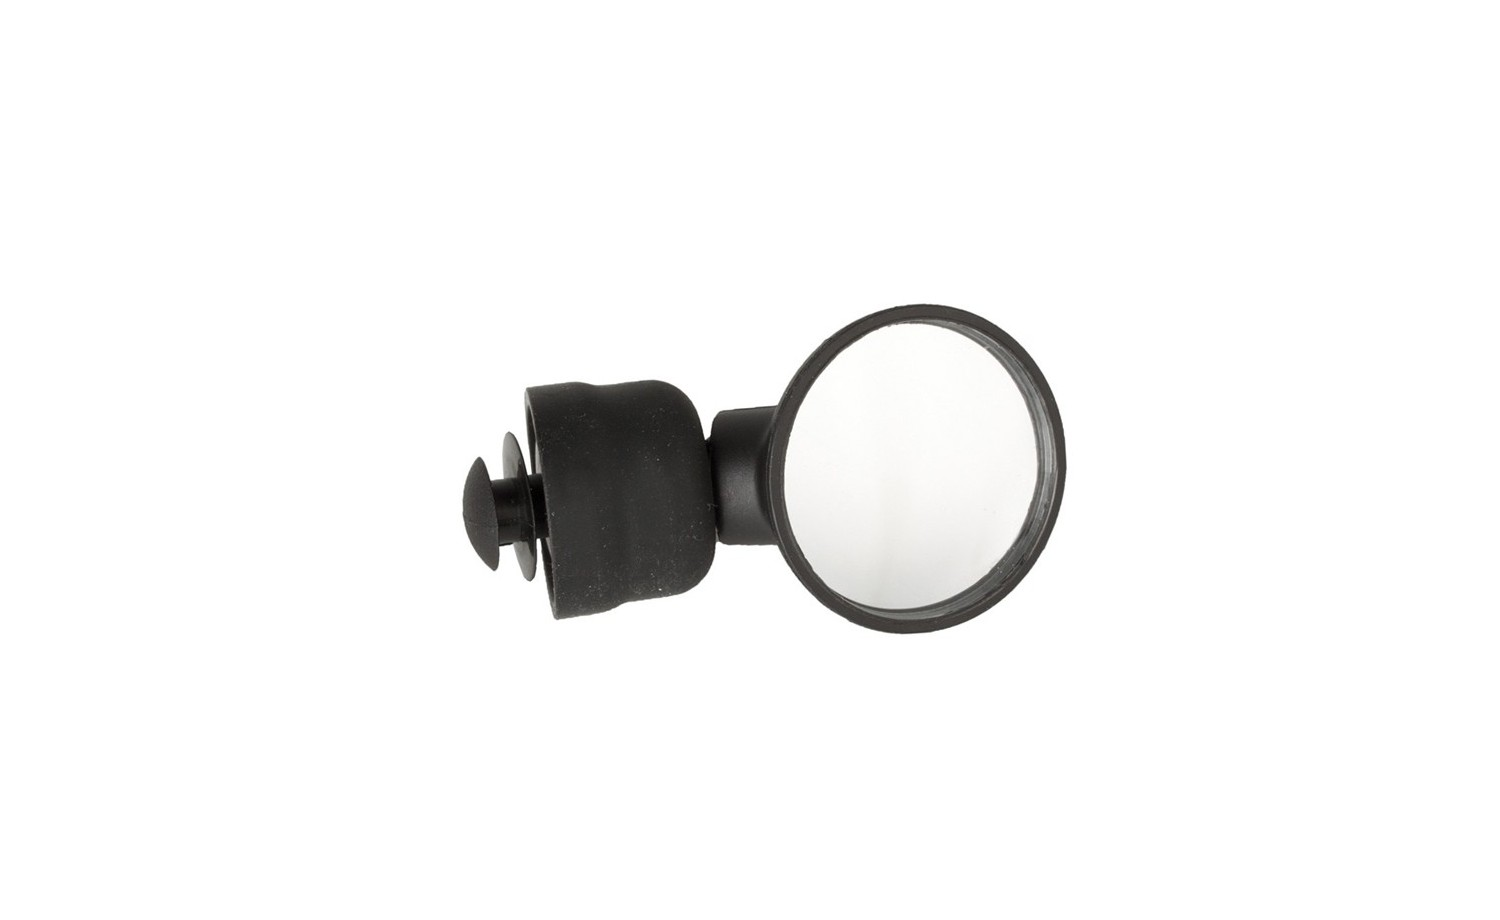 Rearview Mirror SPY MICRO